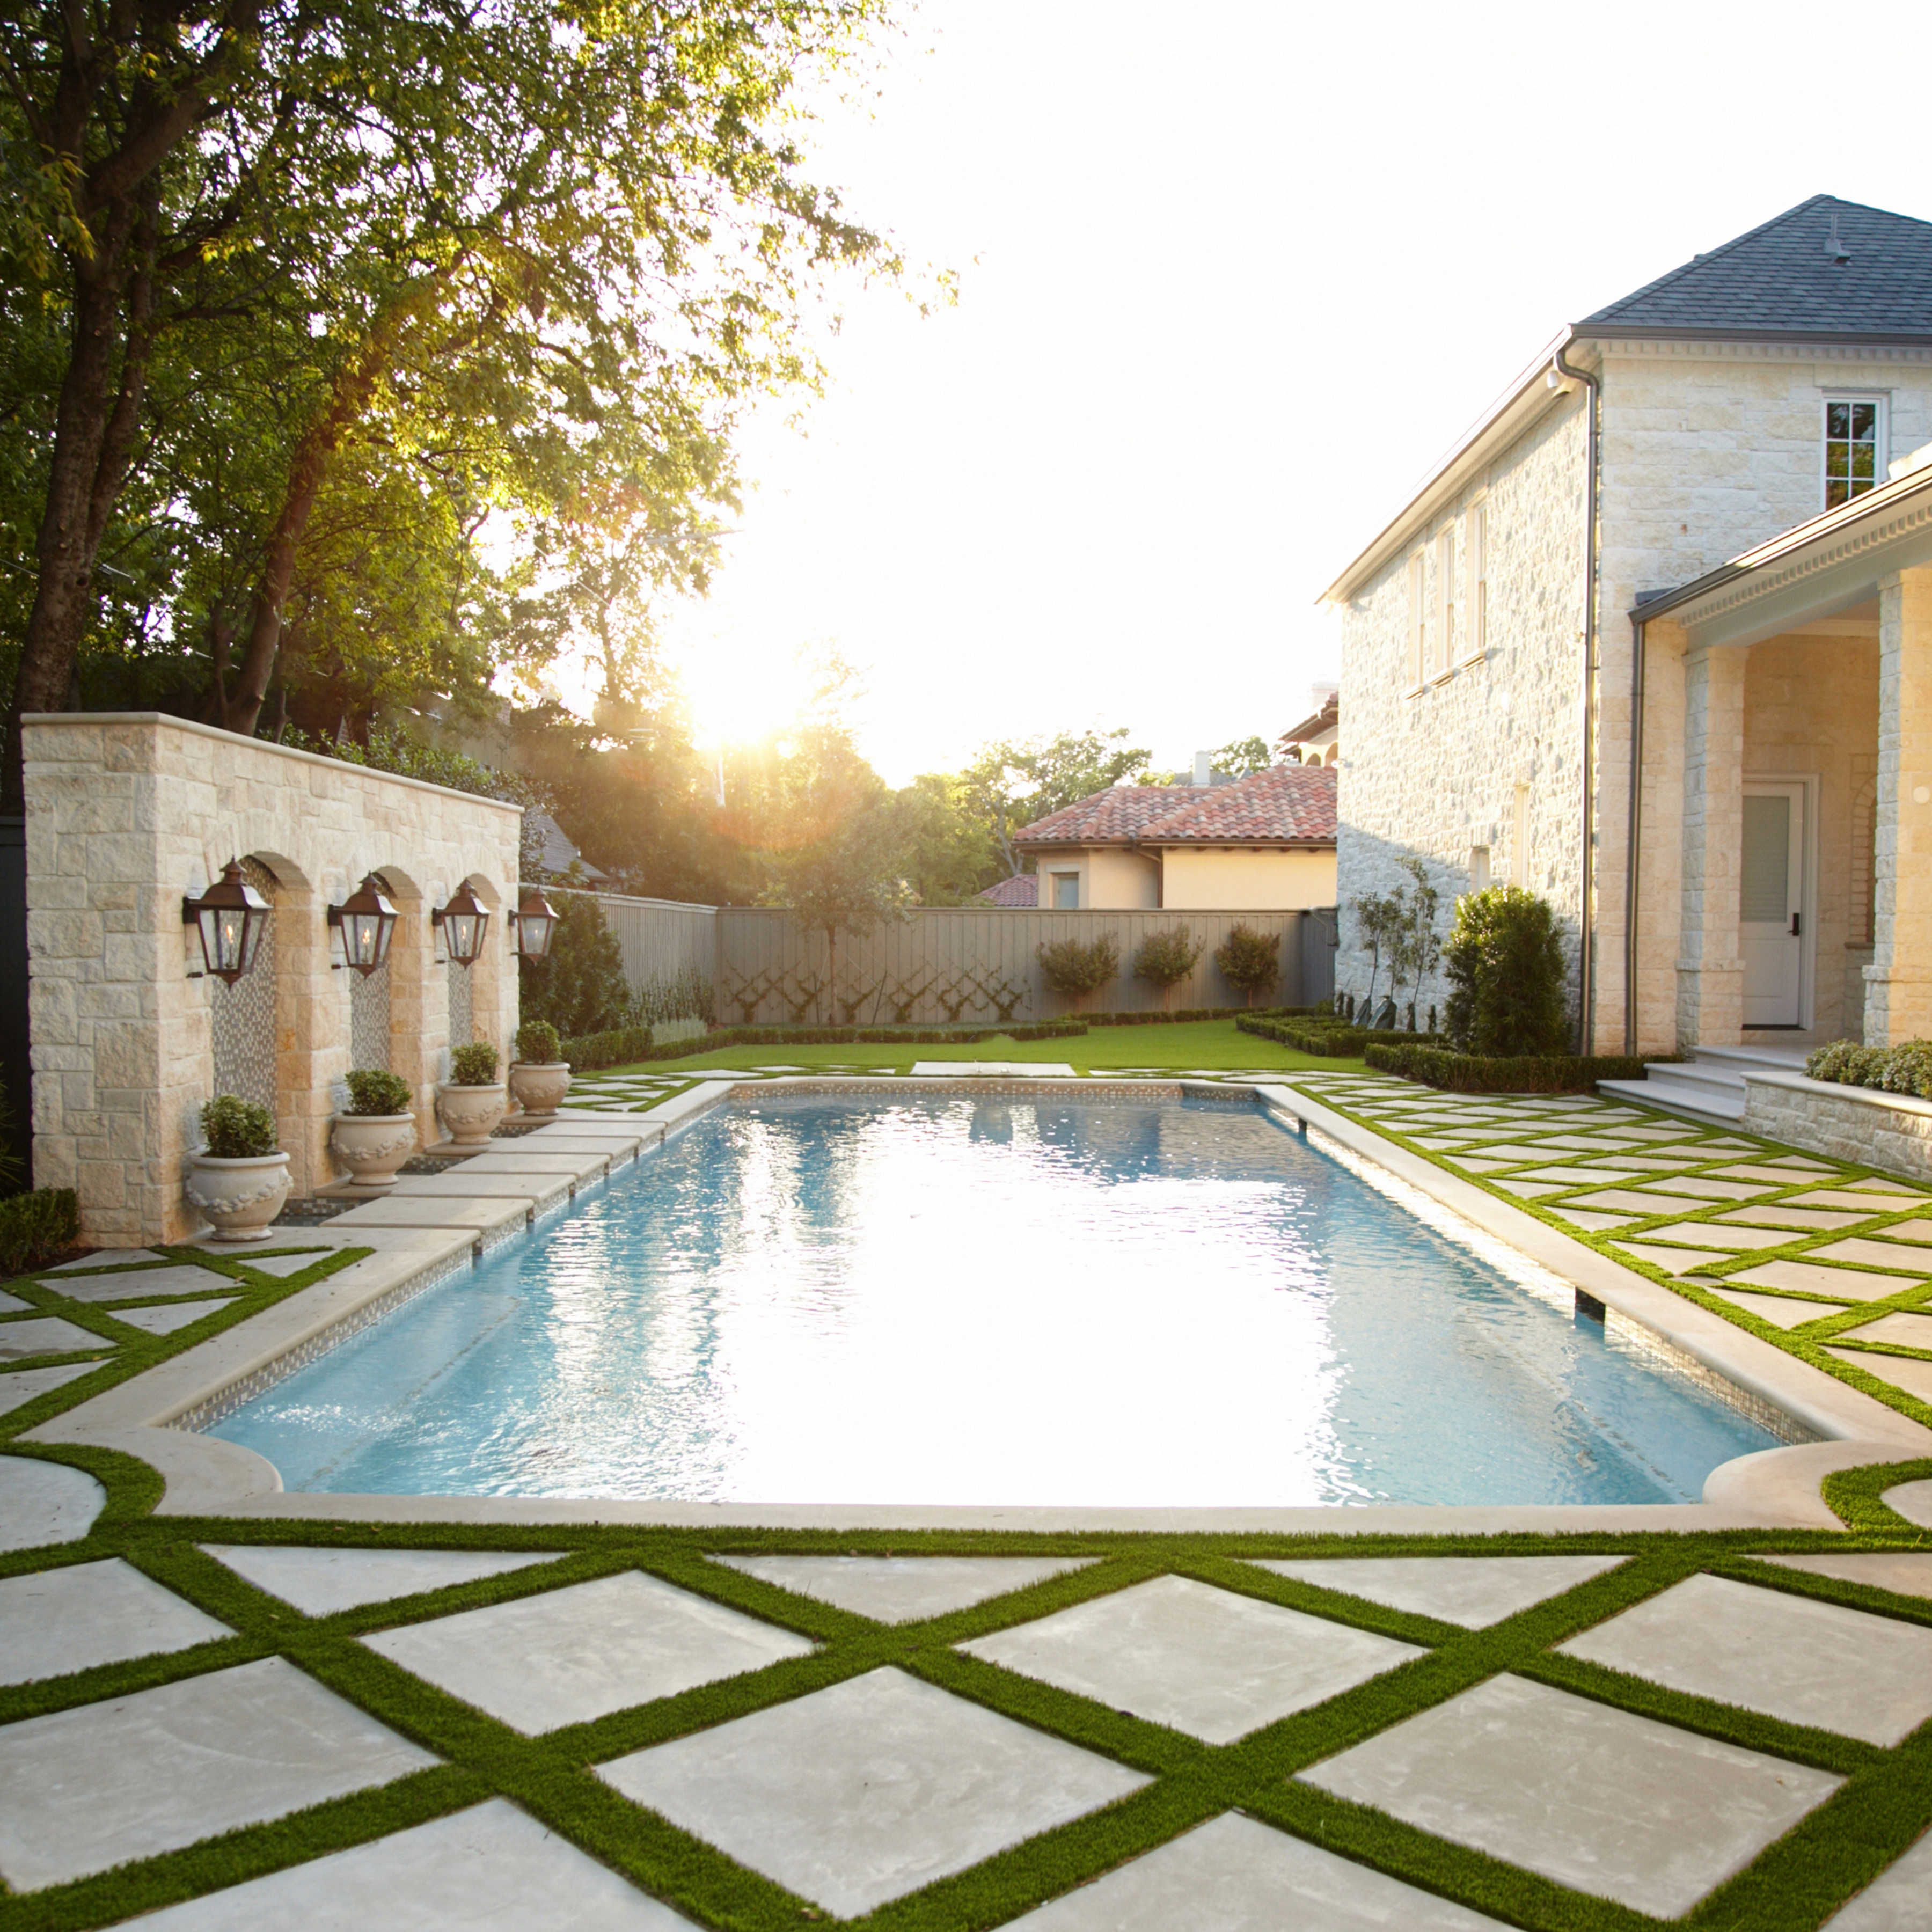 This Parisian influenced garden features a swimming pool, gas lanterns, trimmed hedges, and custom paving integrated with synthetic grass. Along the back of the pool, a nine foot tall focal wall showcases water curtains, glass mosaic tile, gas lanterns, and decorative pottery. Inside the covered patio, an outdoor kitchen, fireplace, and multiple seating areas were added for entertaining.